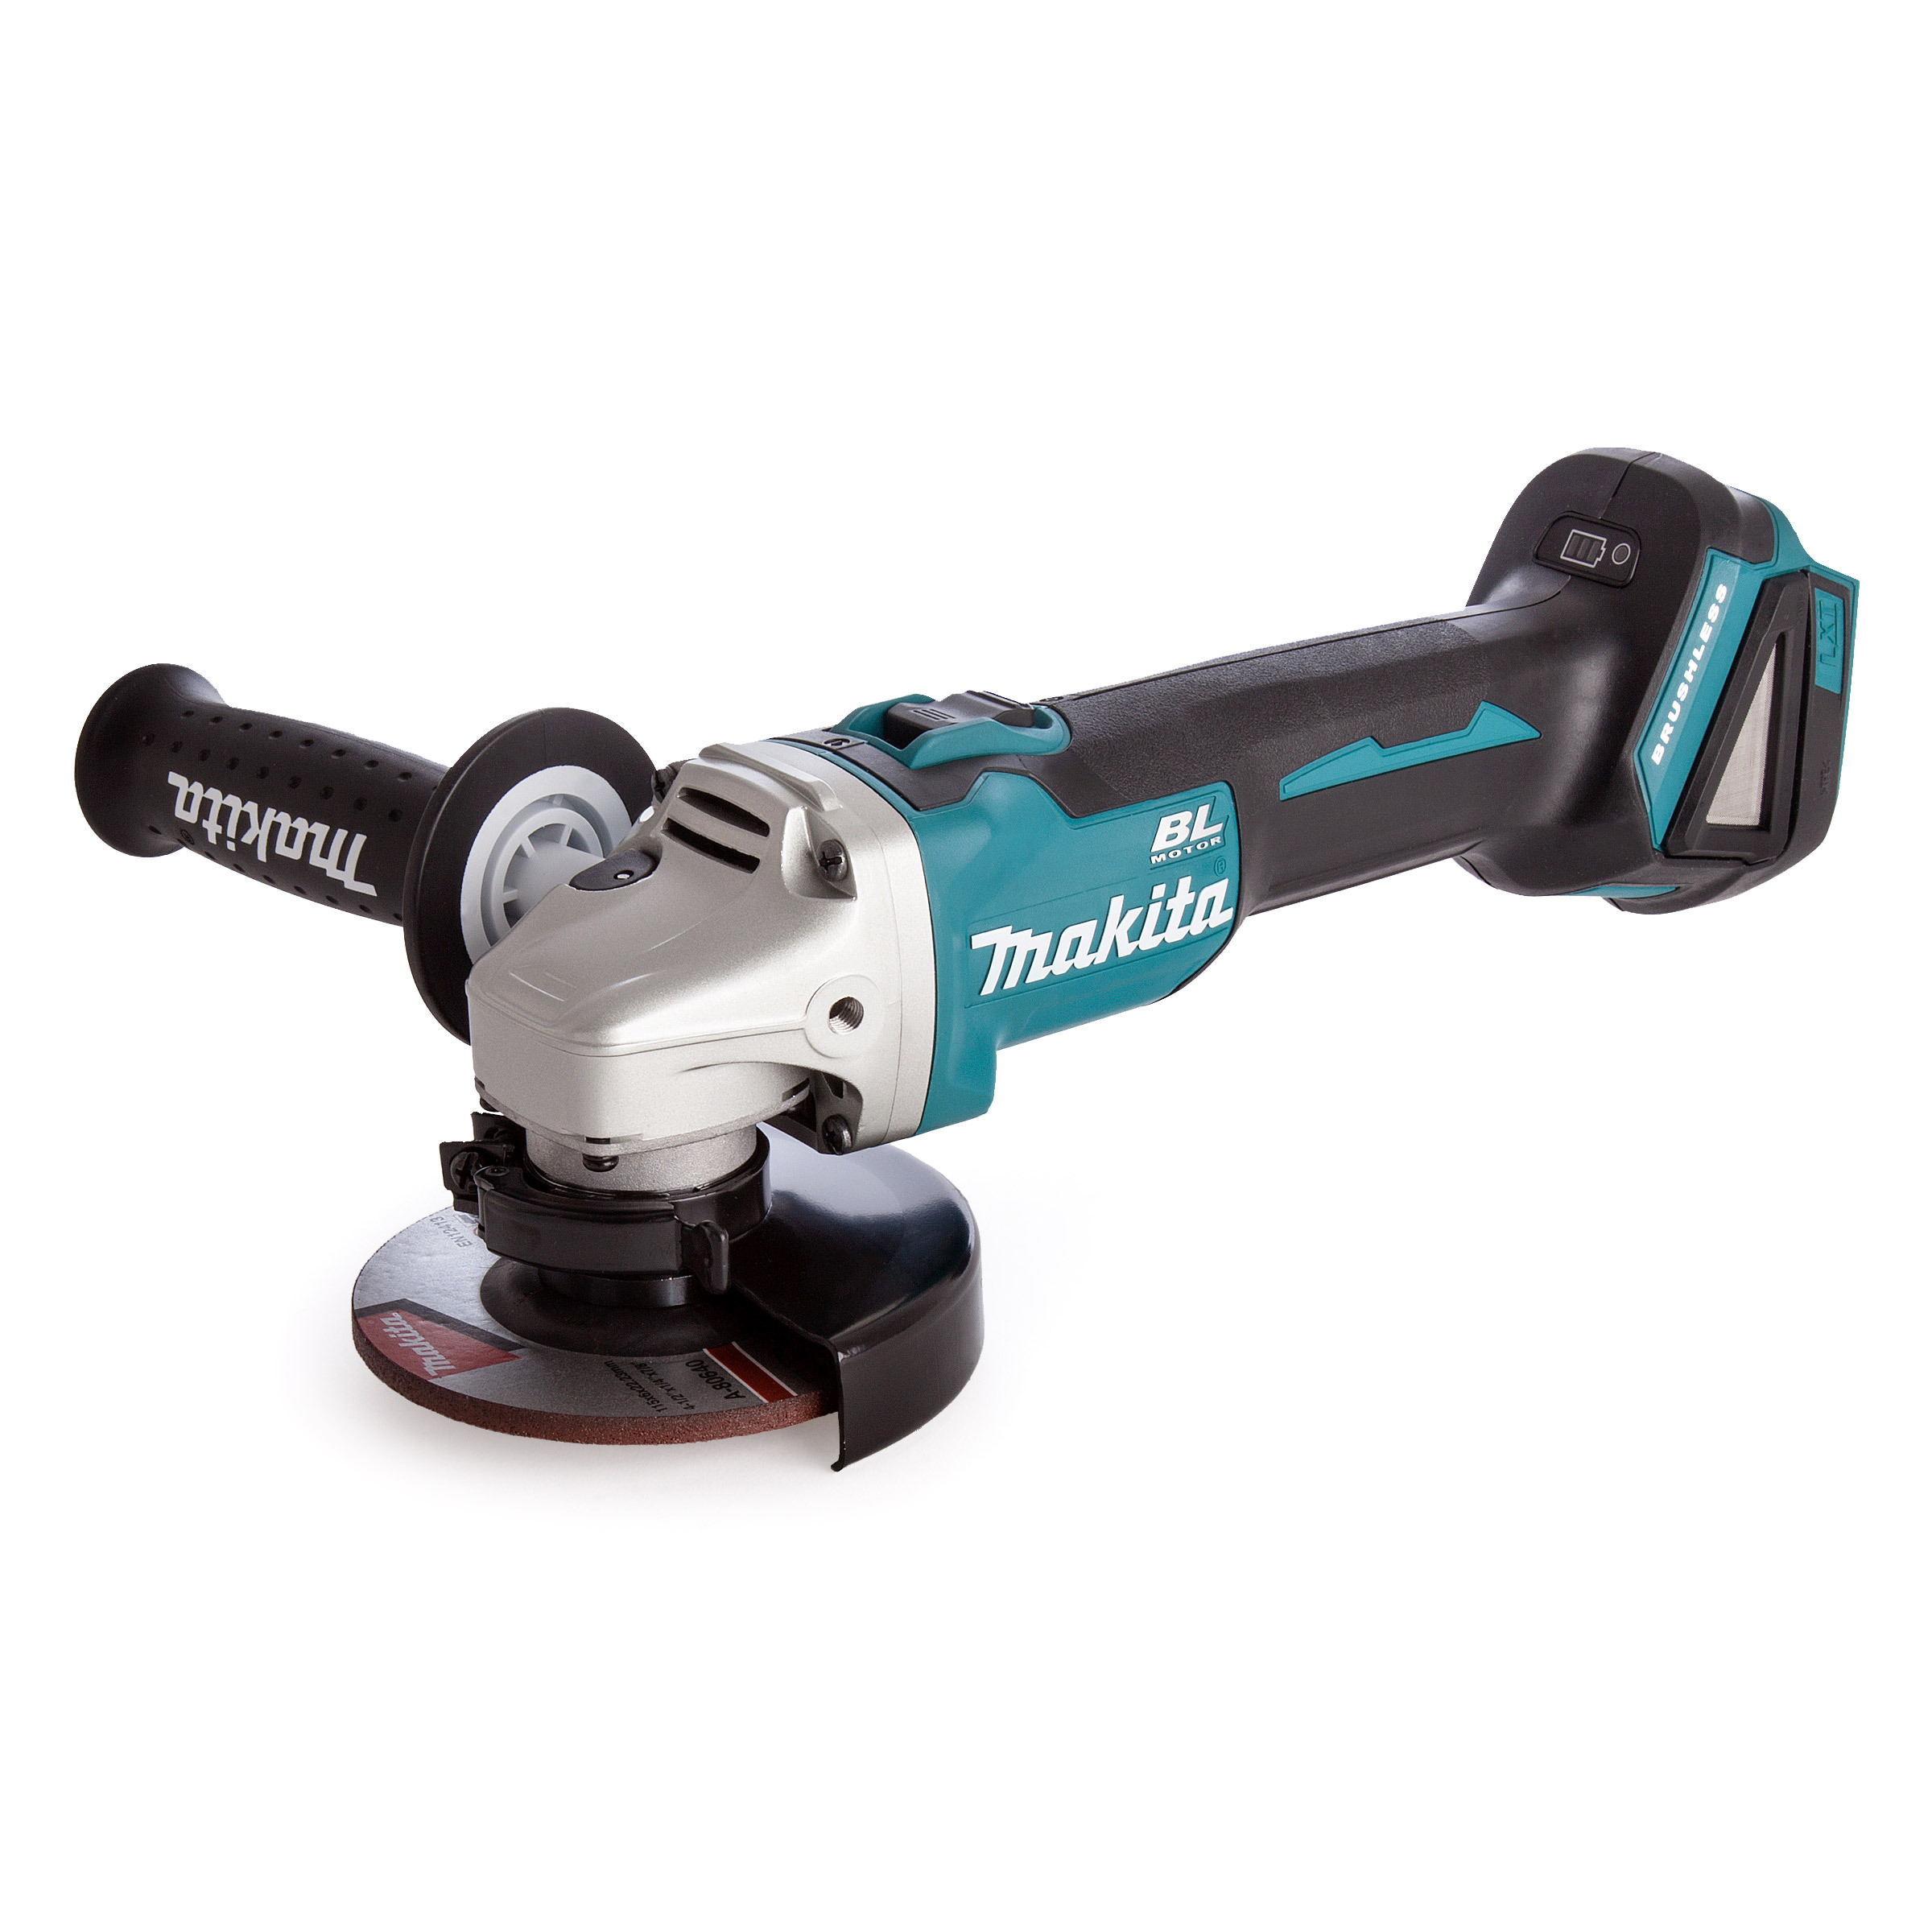 Makita 18v Grinder Brushless (body only) C/w Case MAKDGA456ZJ | It is powered by an 18V Li-ion battery which gives it as much power as a corded Grinder, and has been developed based on the DGA454 series. | toolforce.ie